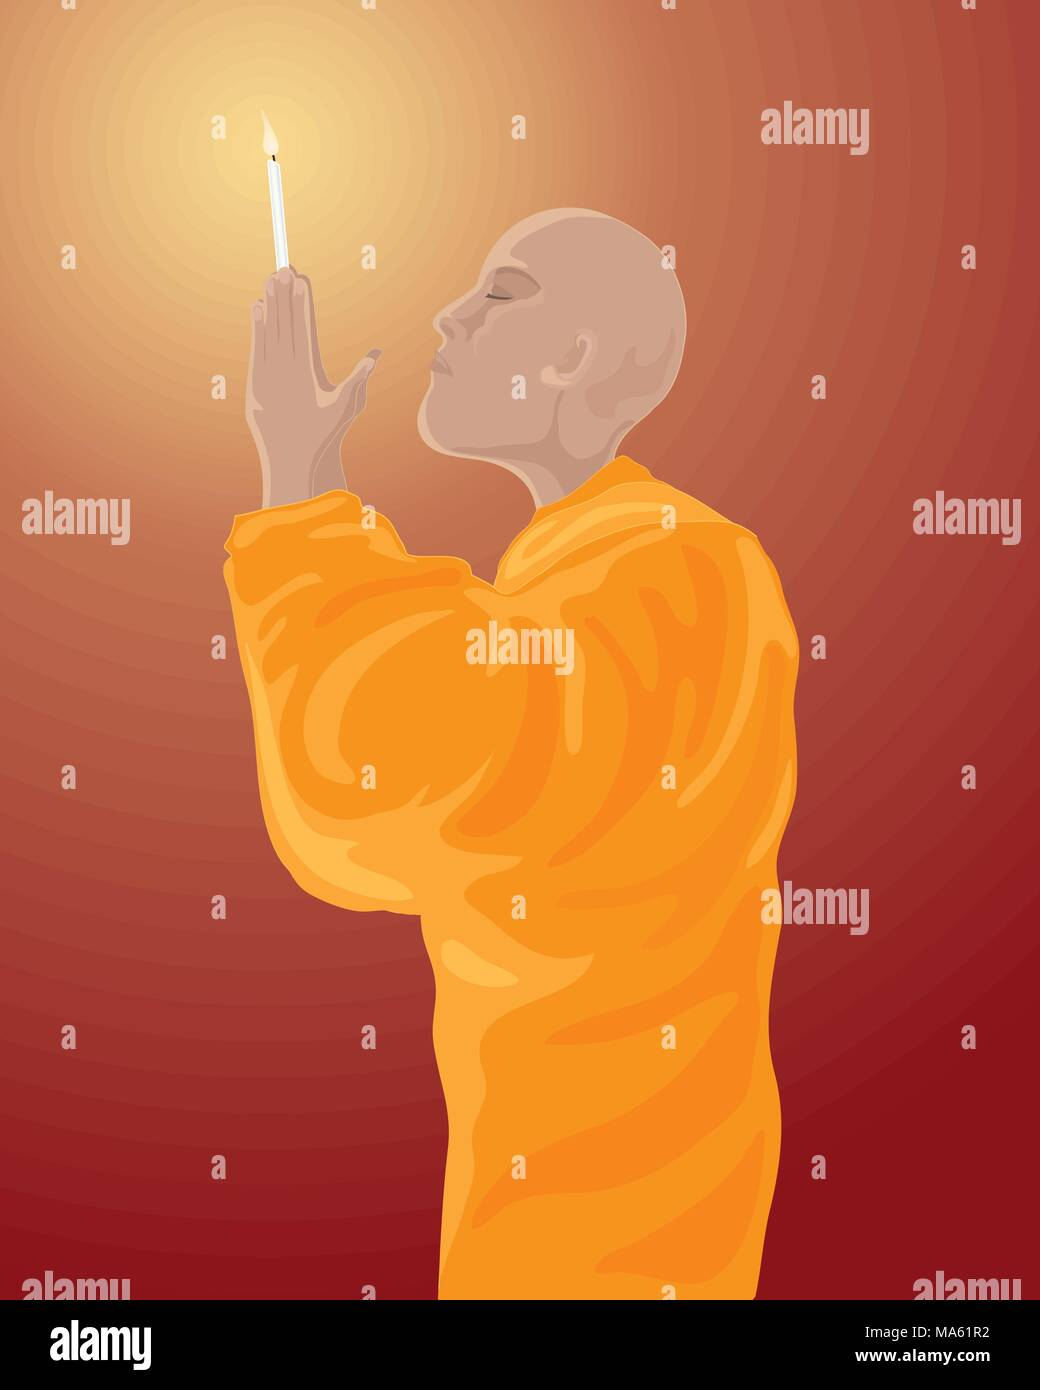 A Vector Illustration In Eps 10 Format Of Buddhist Monk Orange Robes Meditating With Lighted Candle On Dark Red Background